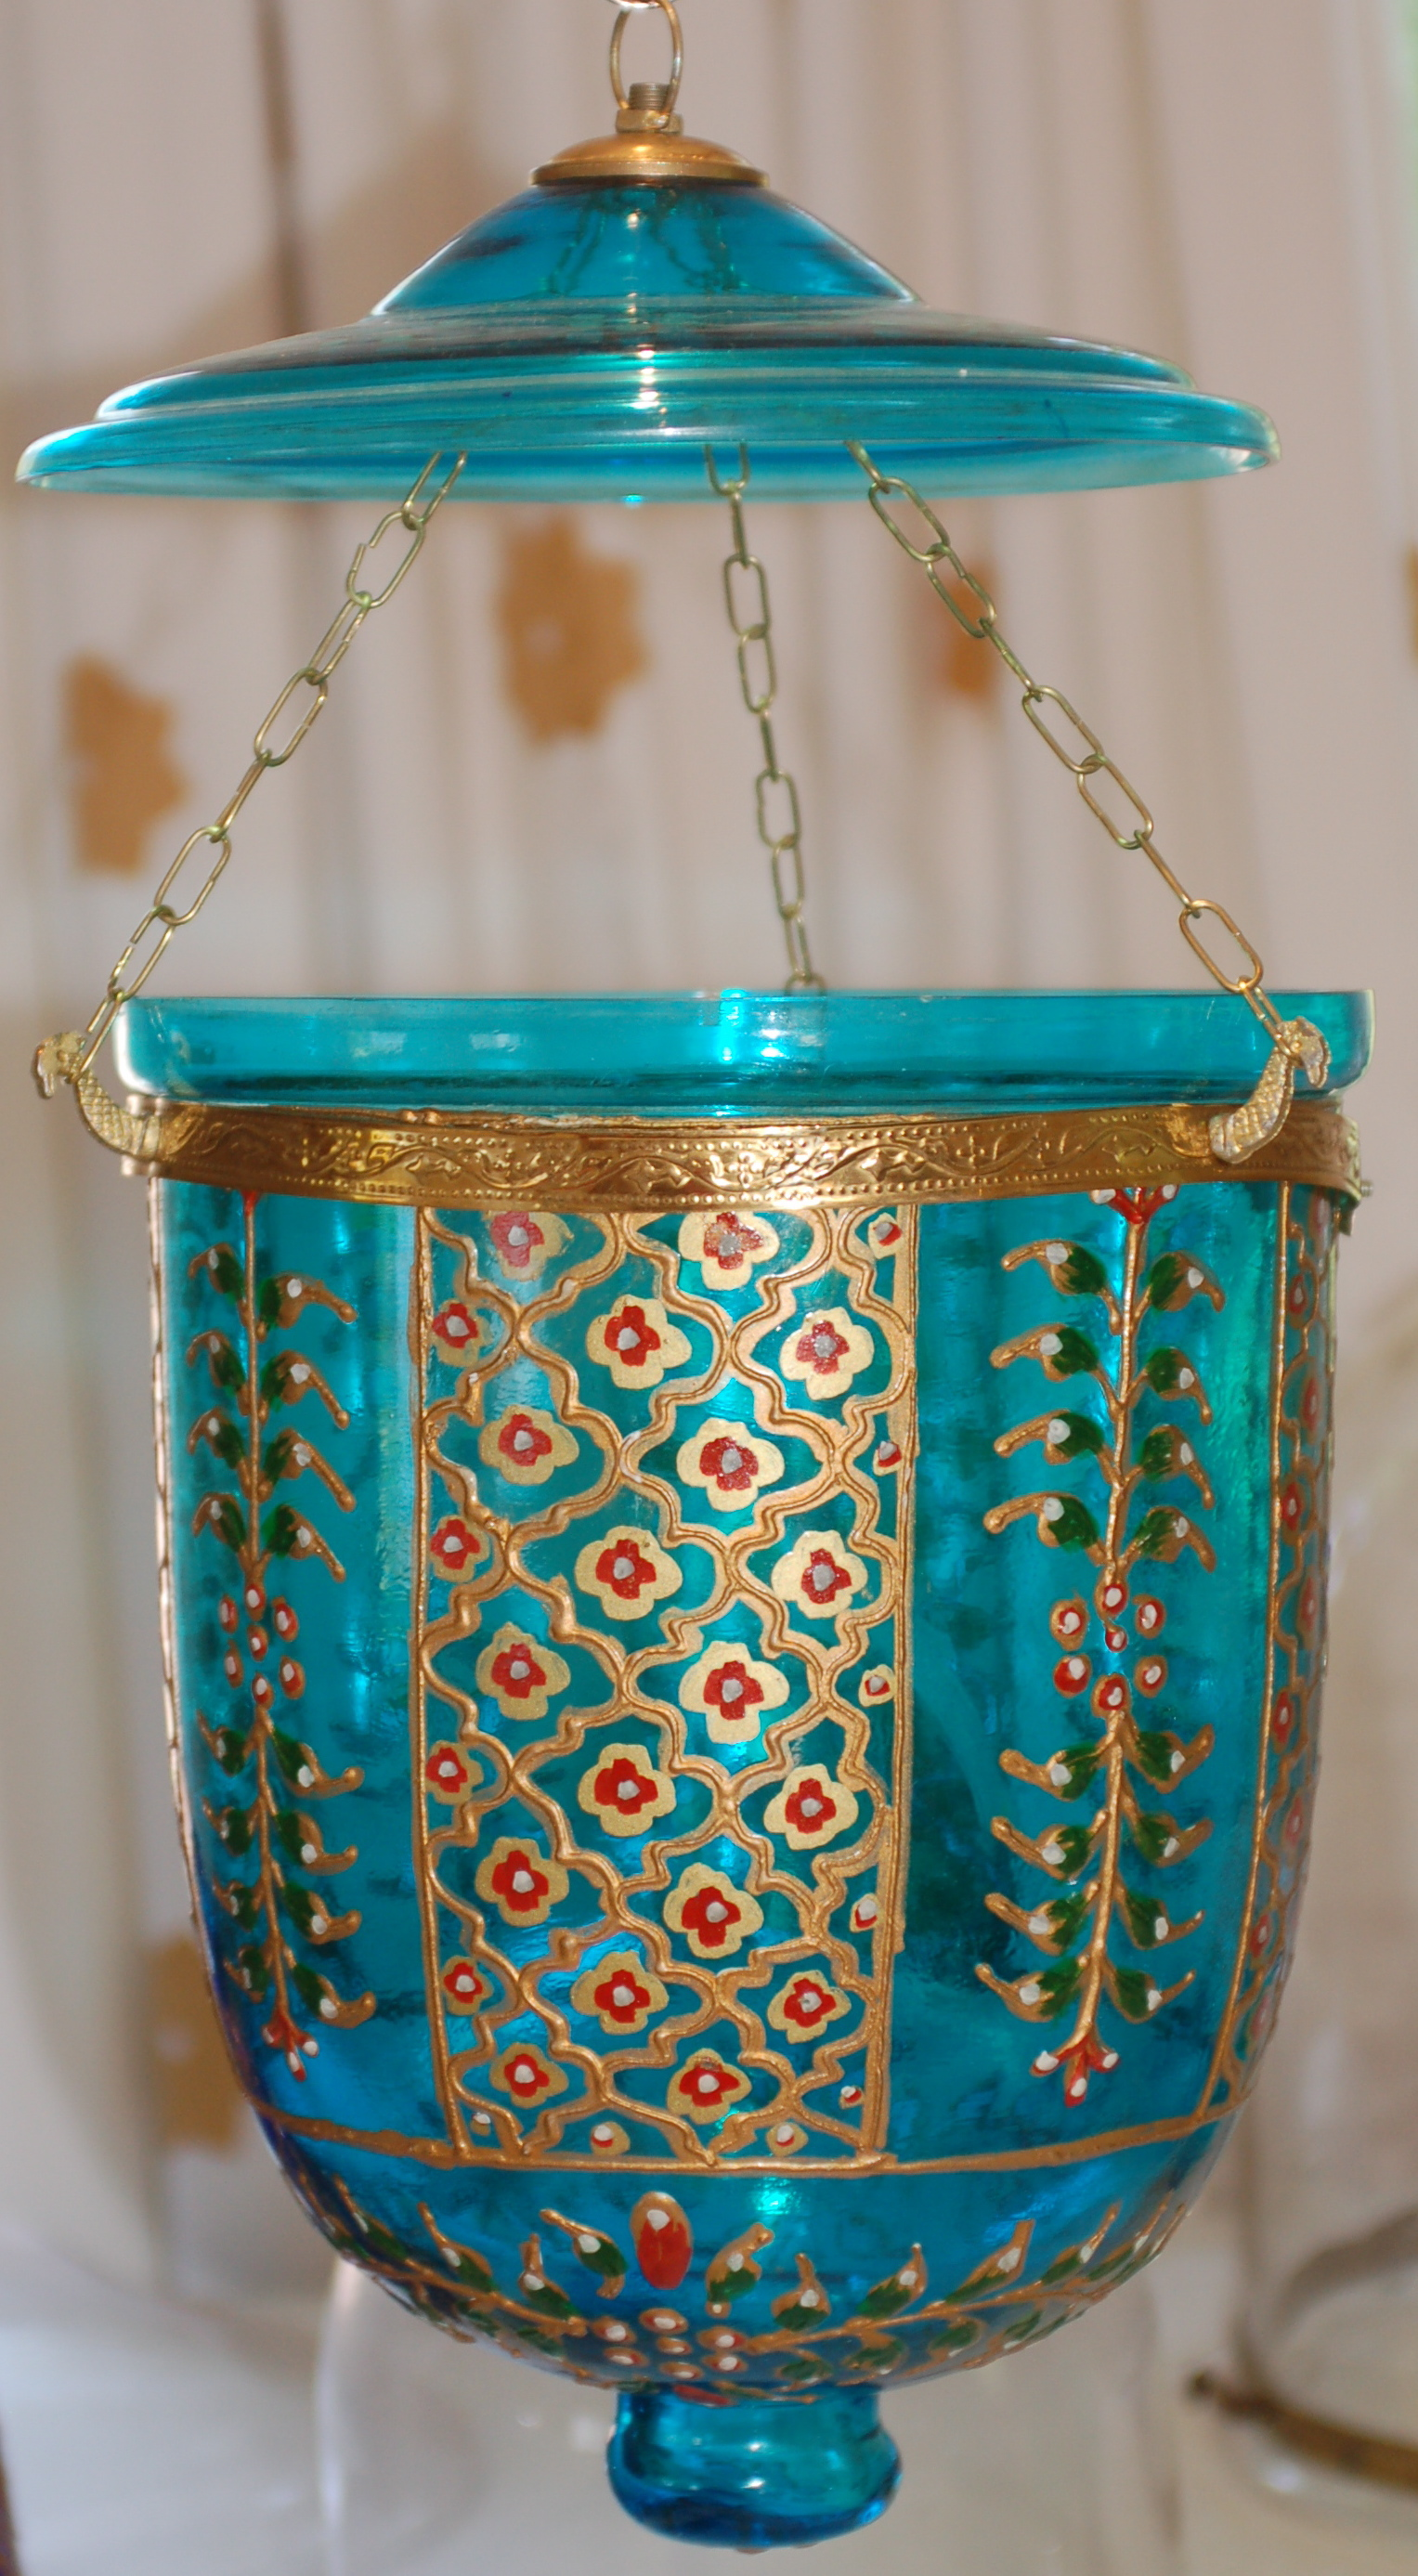 "Turquoise embossed hanging lantern, not fitted for electricity.  Approximately 18"" high; 10"" diameter"